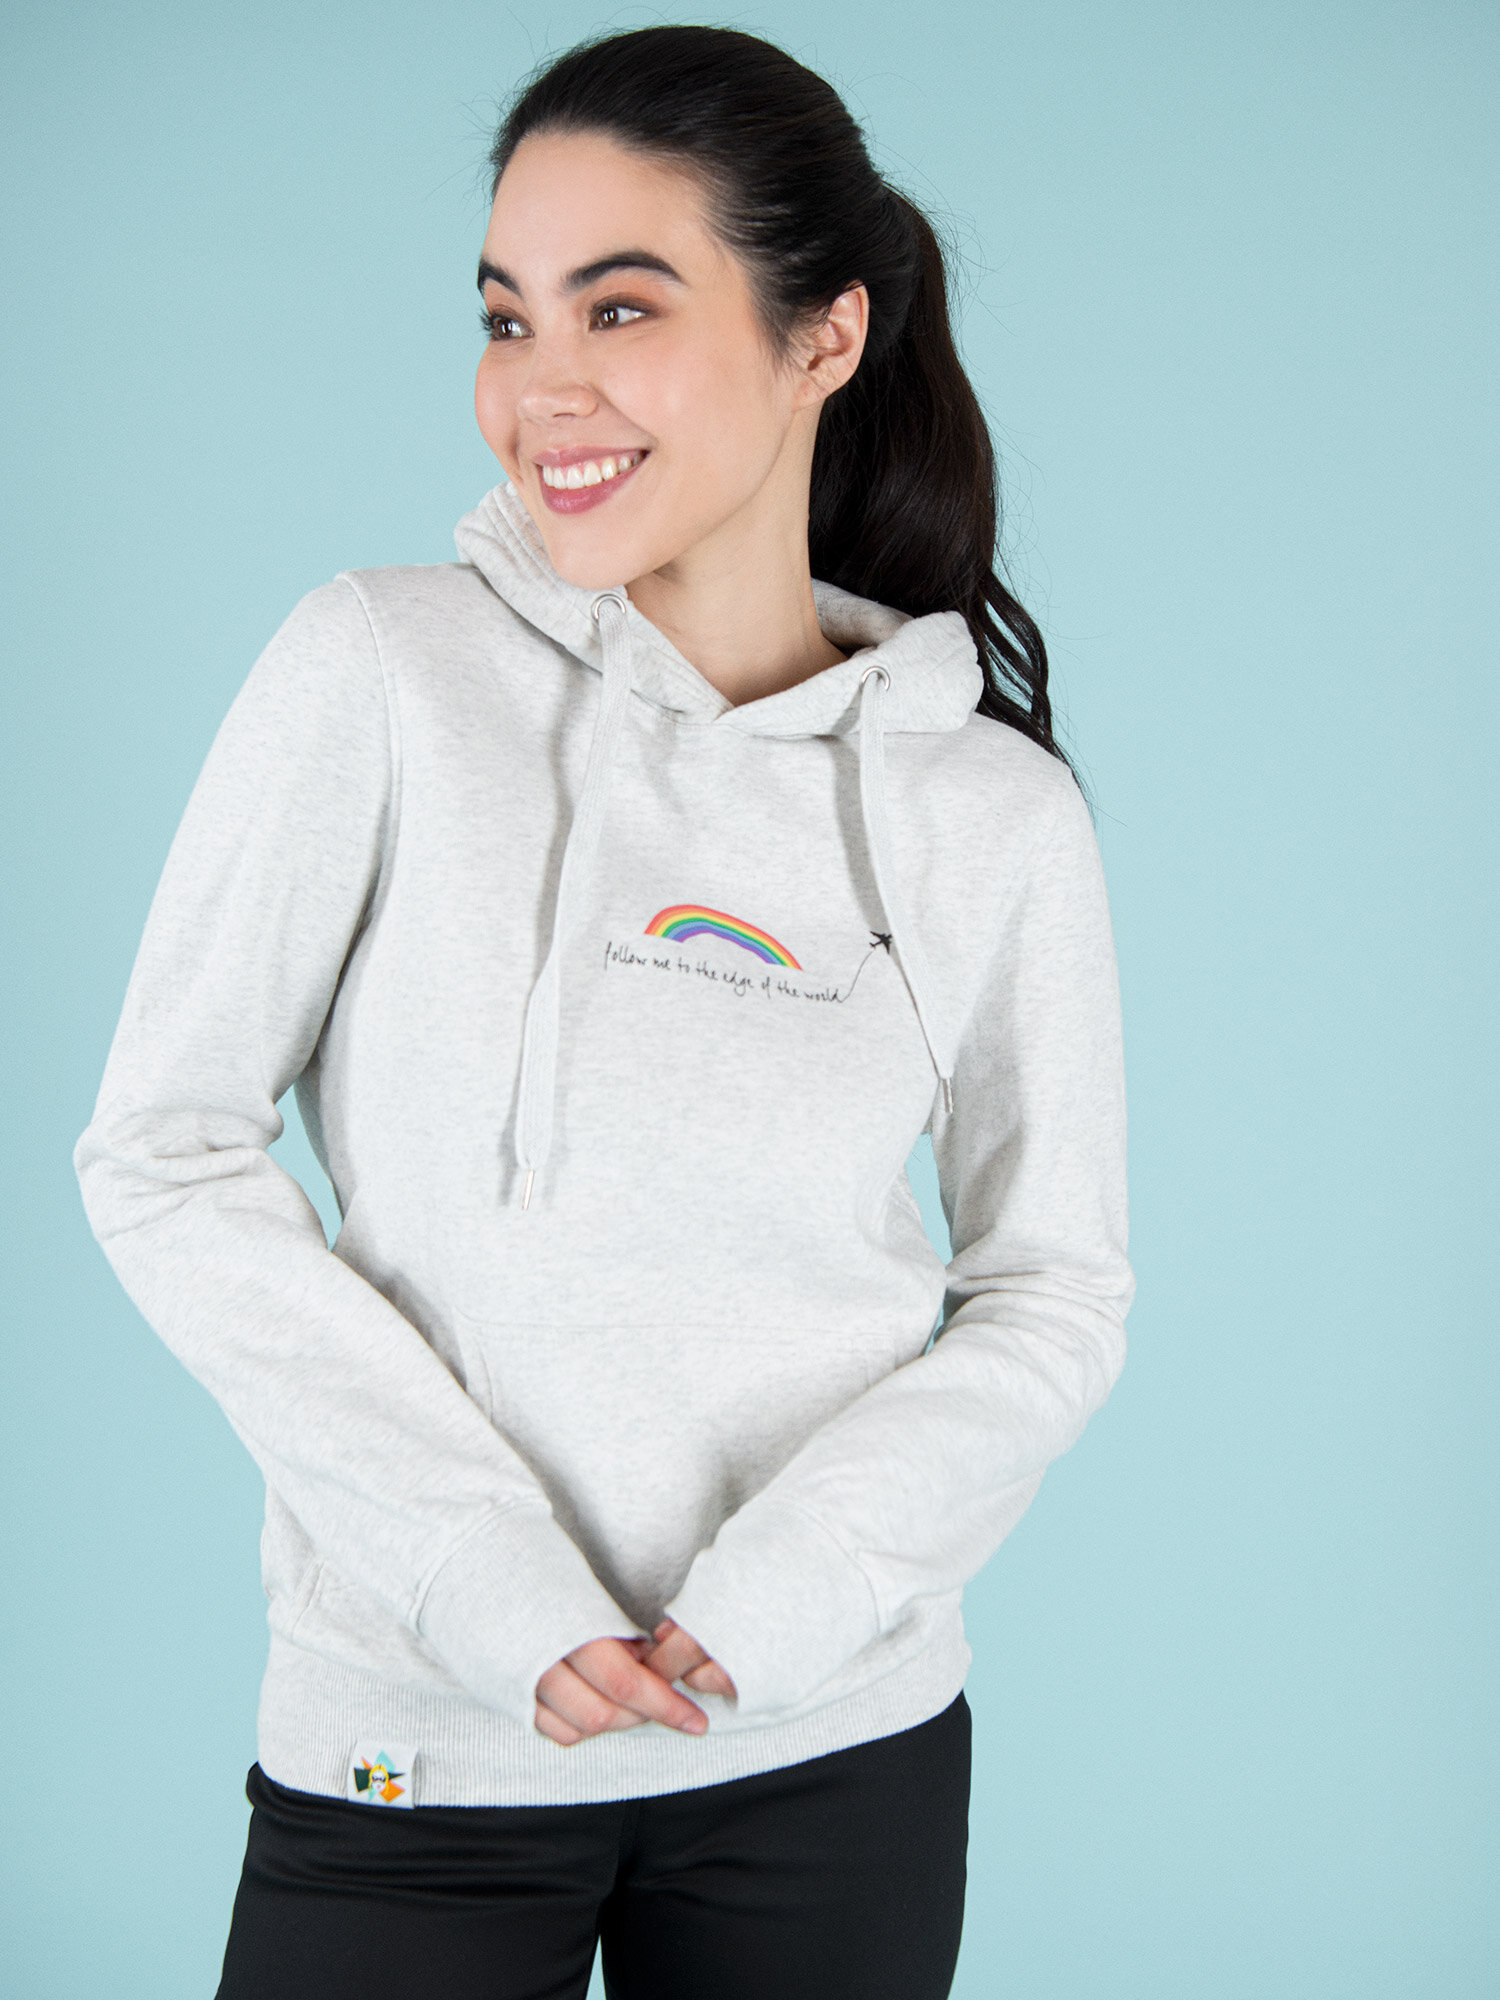 Follow Me Sustainable Hoodie, £98.-